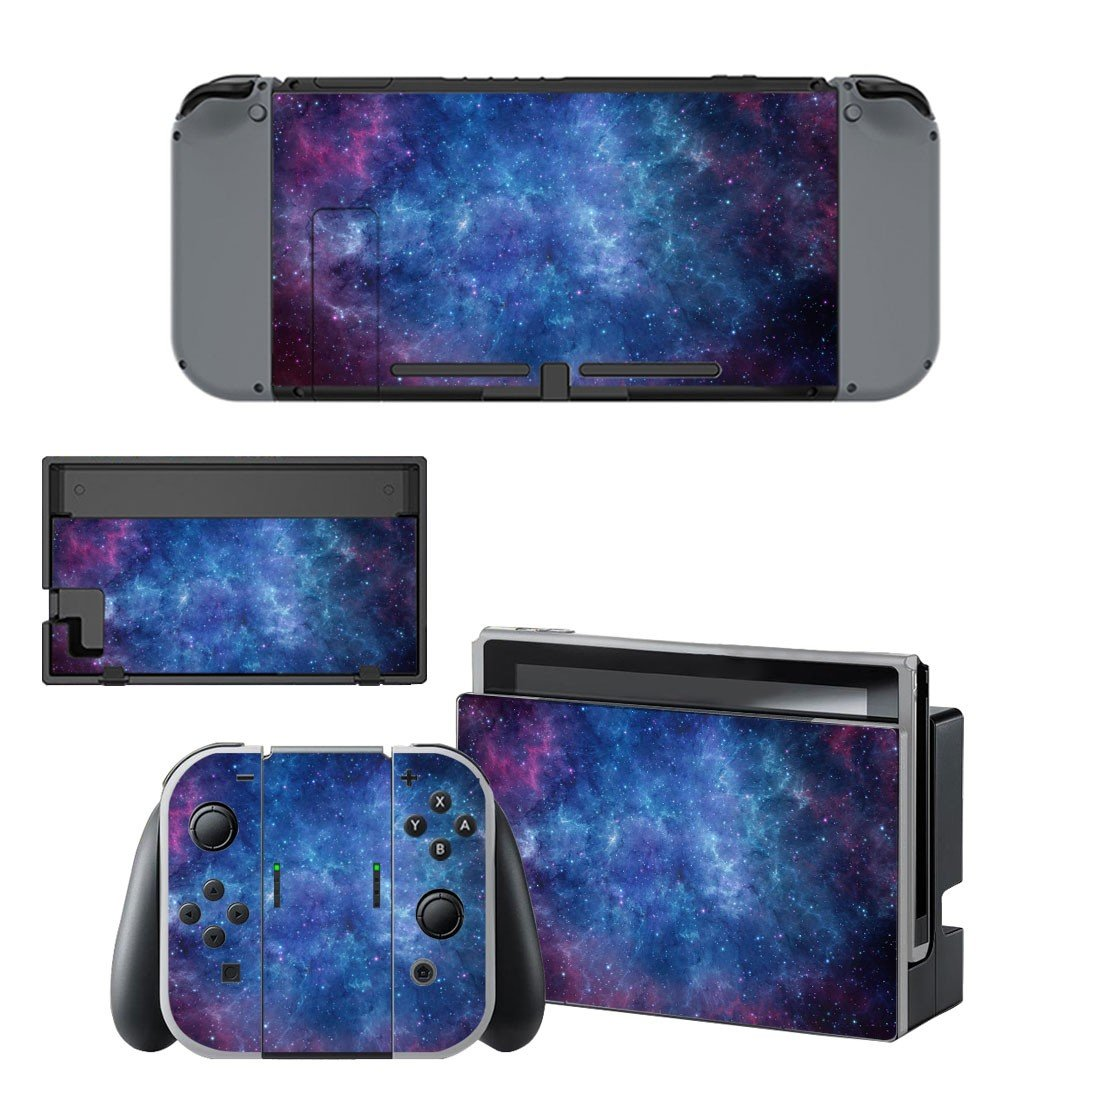 Starry sky decal for Nintendo switch console sticker skin